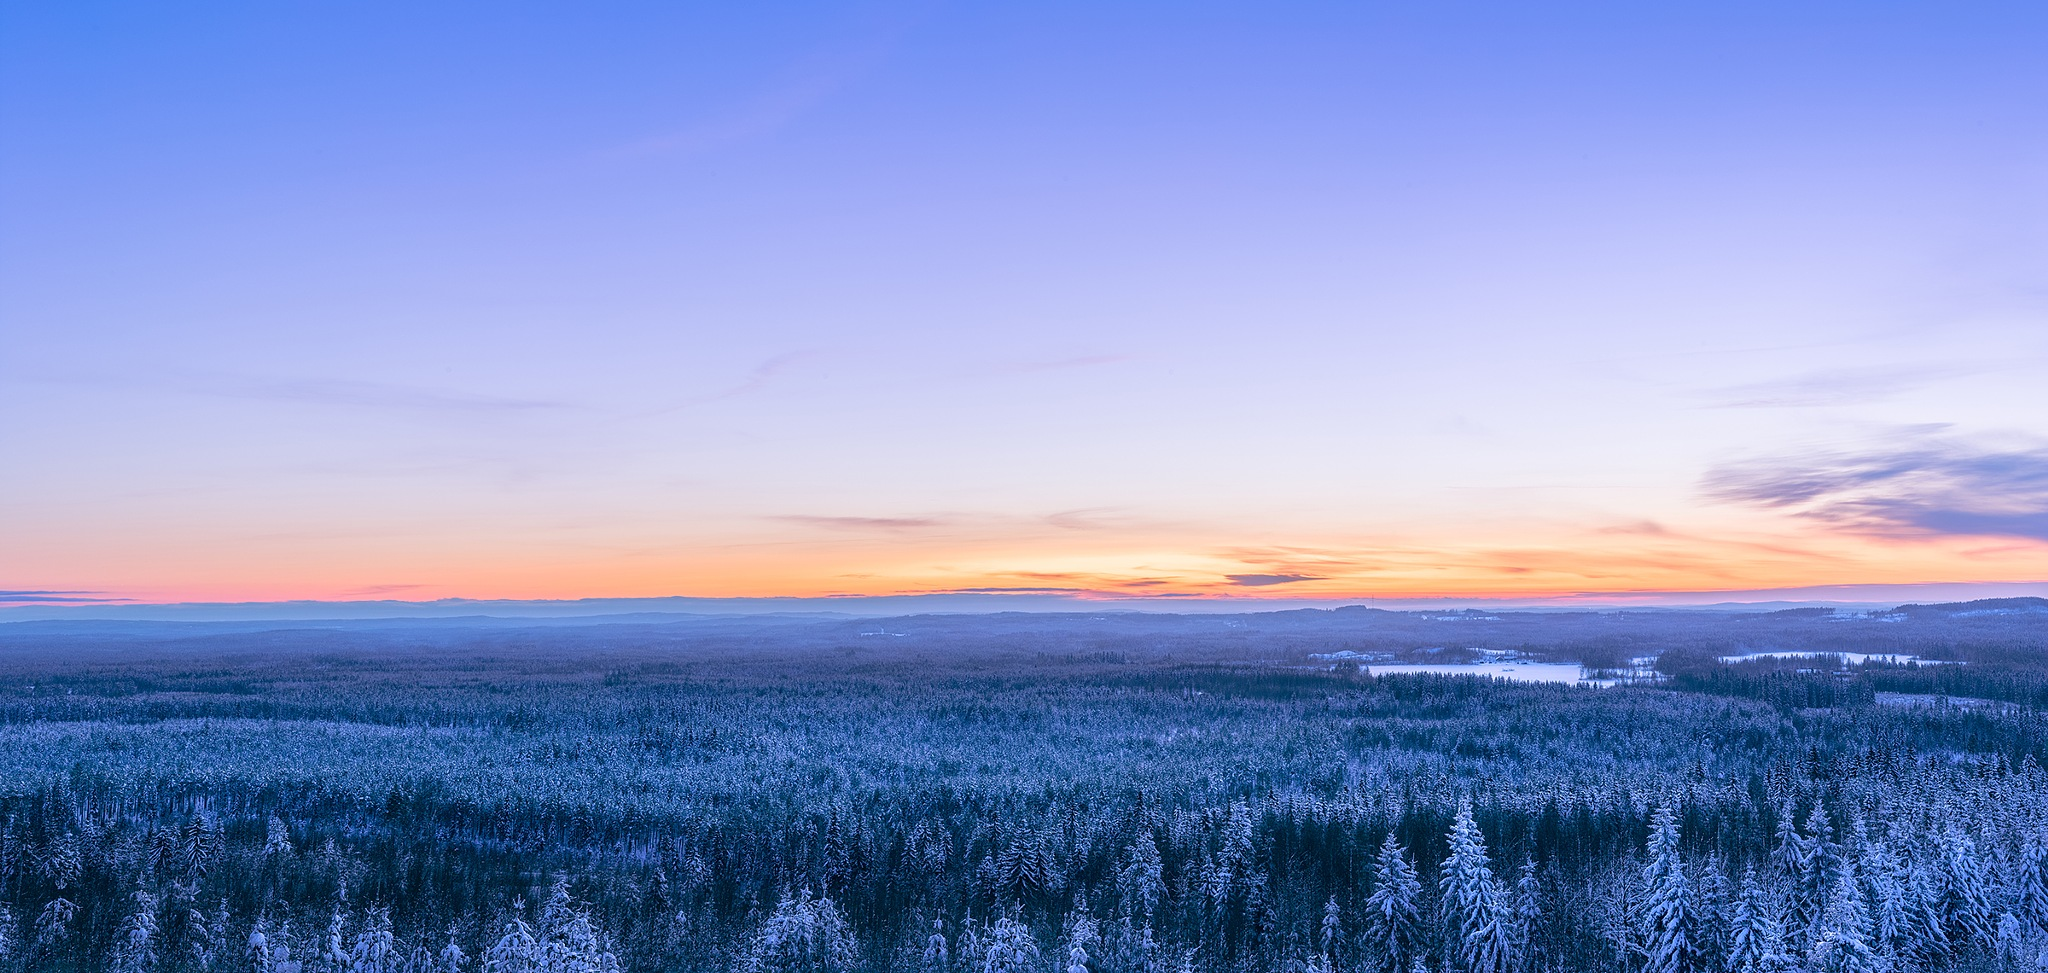 Those cold woods by Harri Saastamoinen